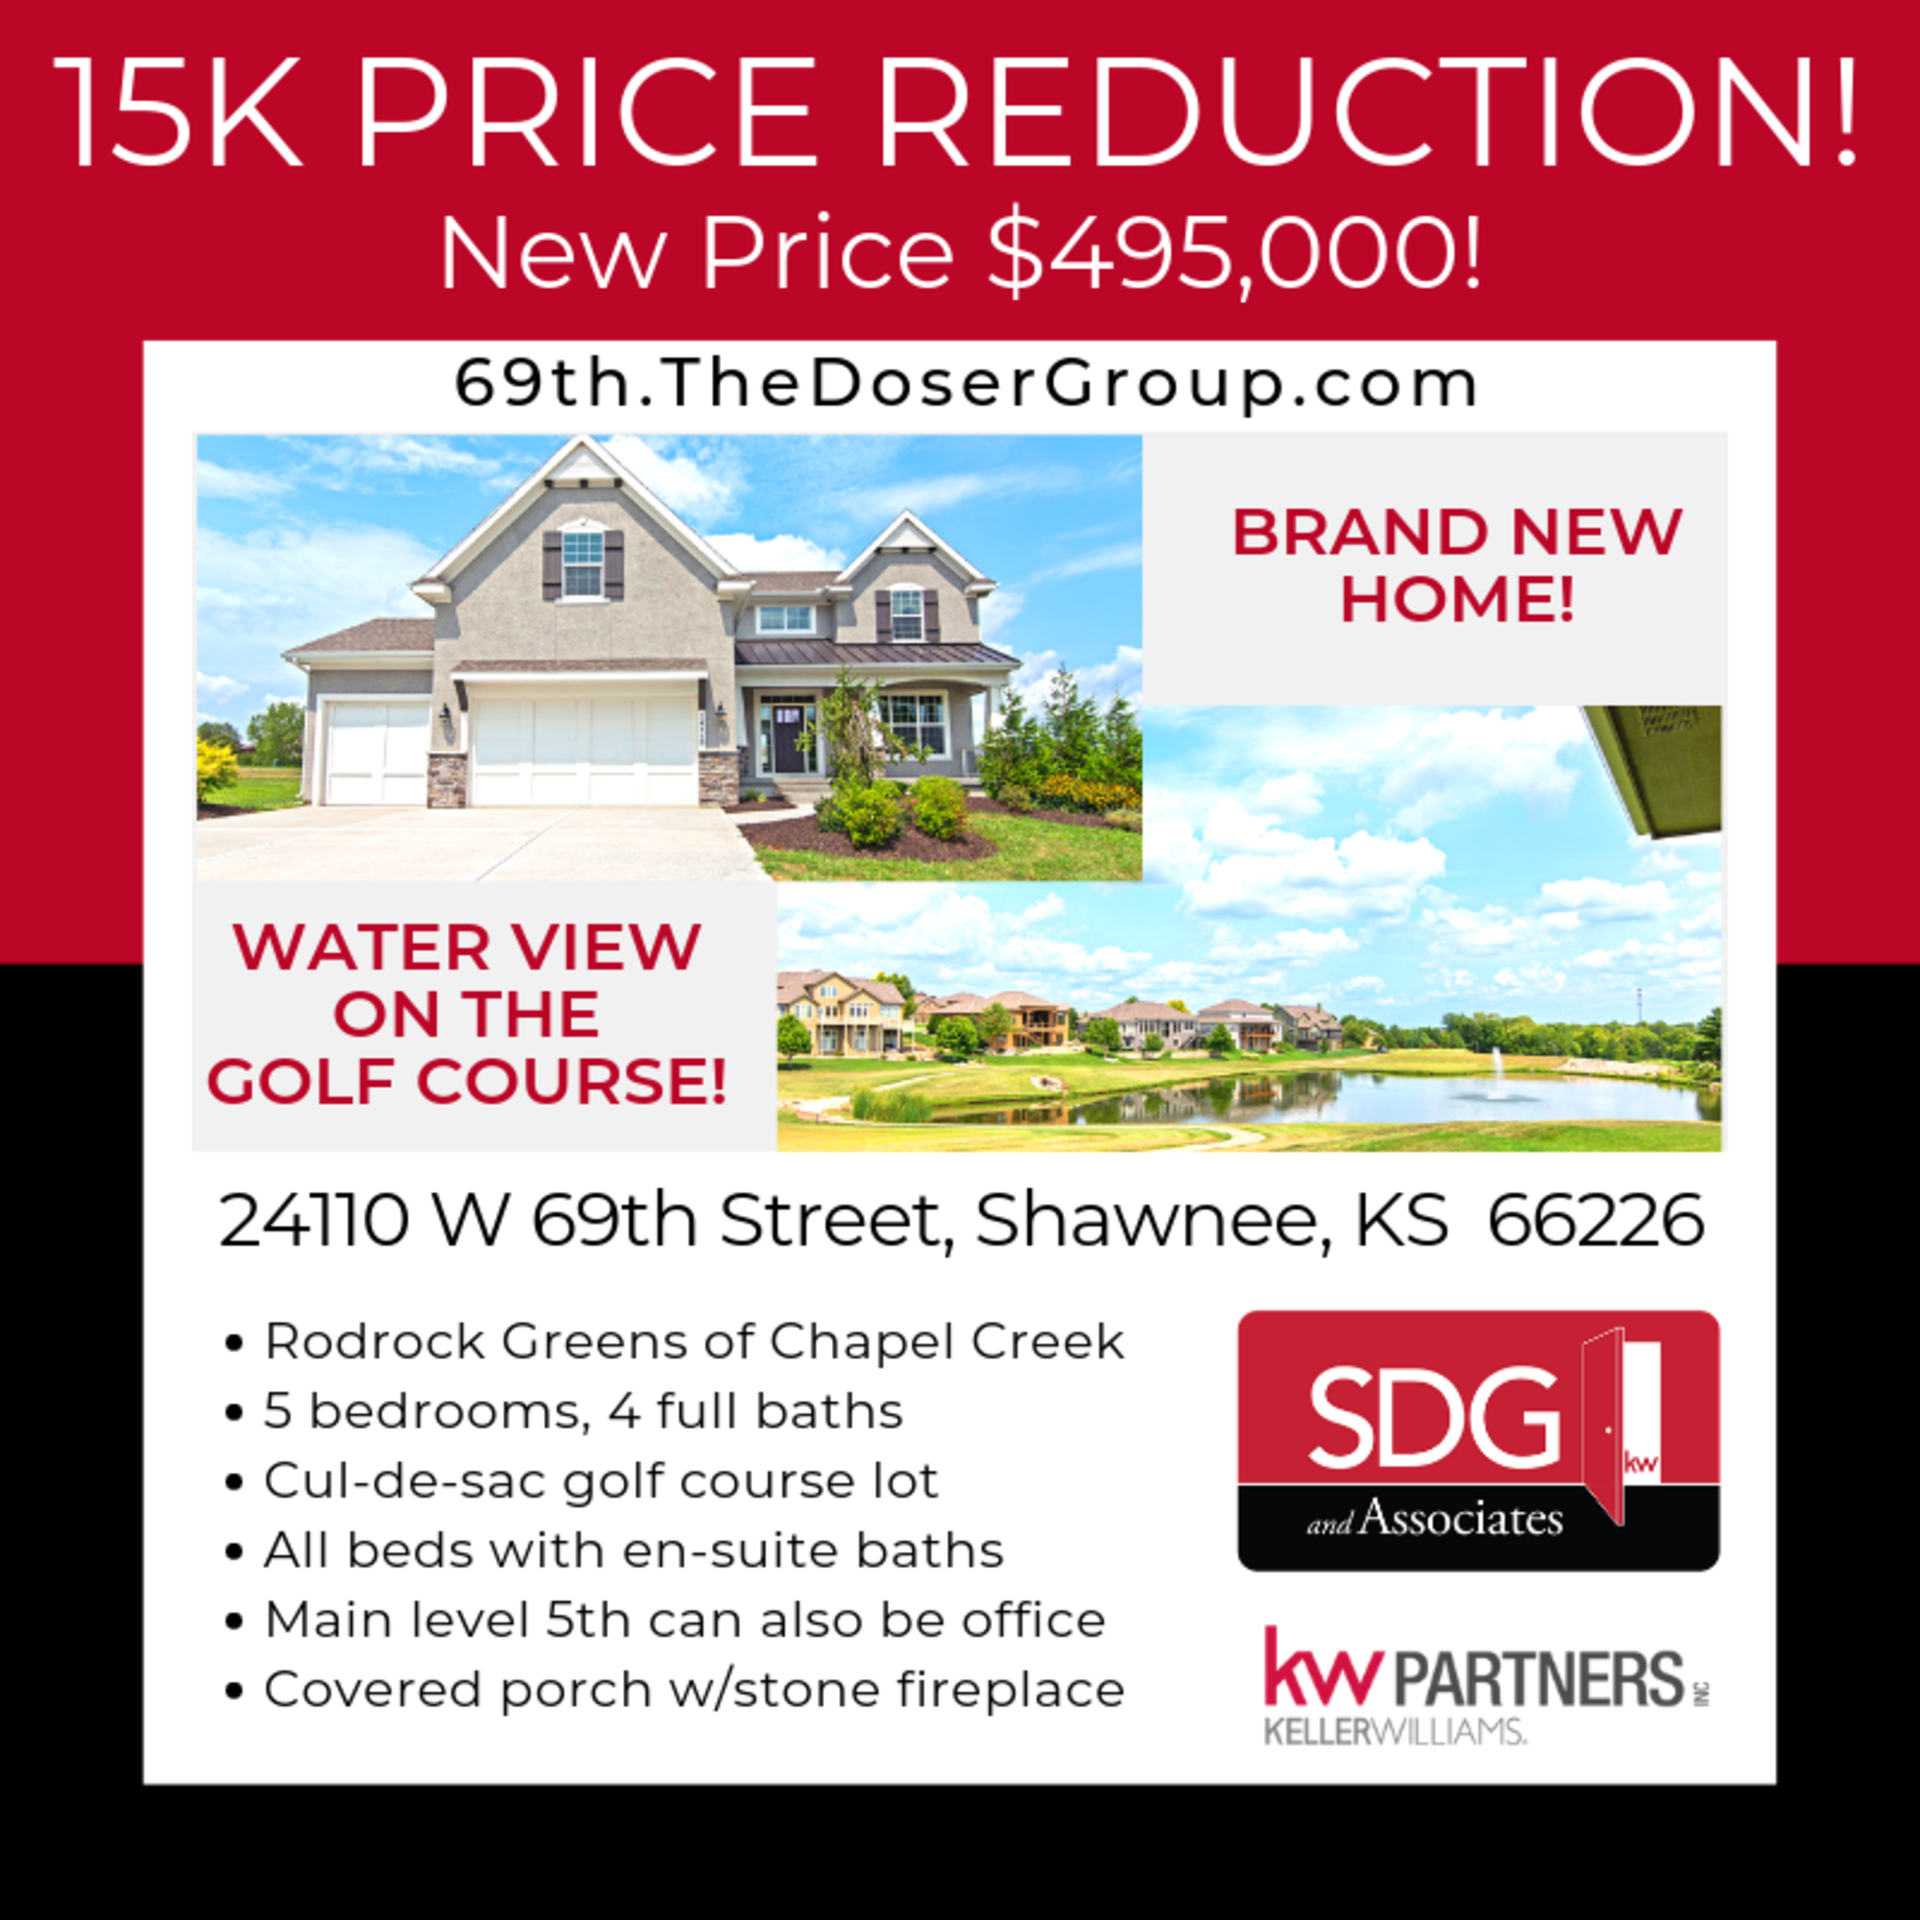 NEW PRICE on this BRAND NEW home with WATER VIEW on the GOLF COURSE